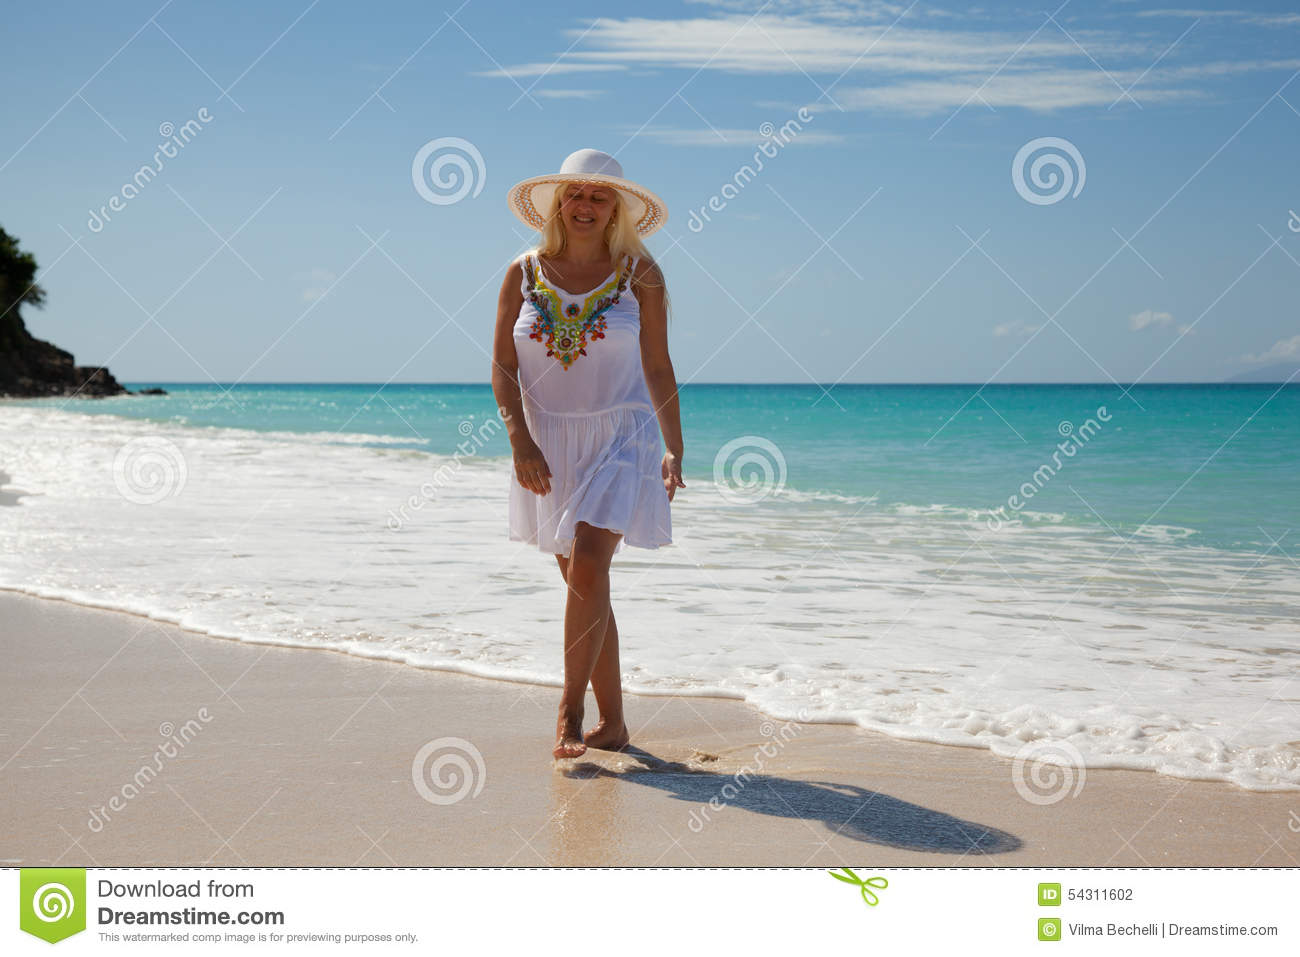 This intelligible Mujeres en la playa congratulate, what